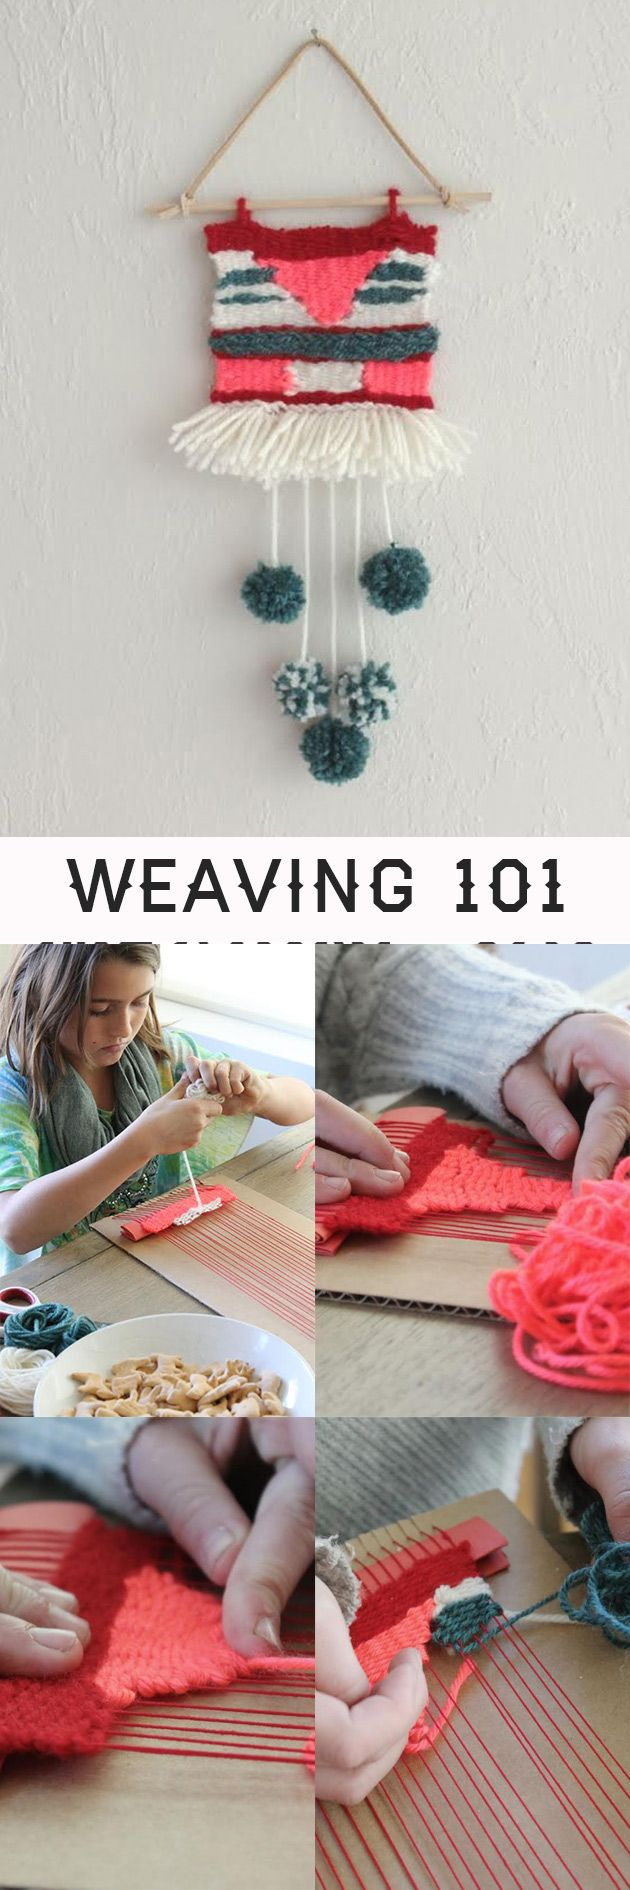 DIY on a wonderful weaving project for kids and grown-ups